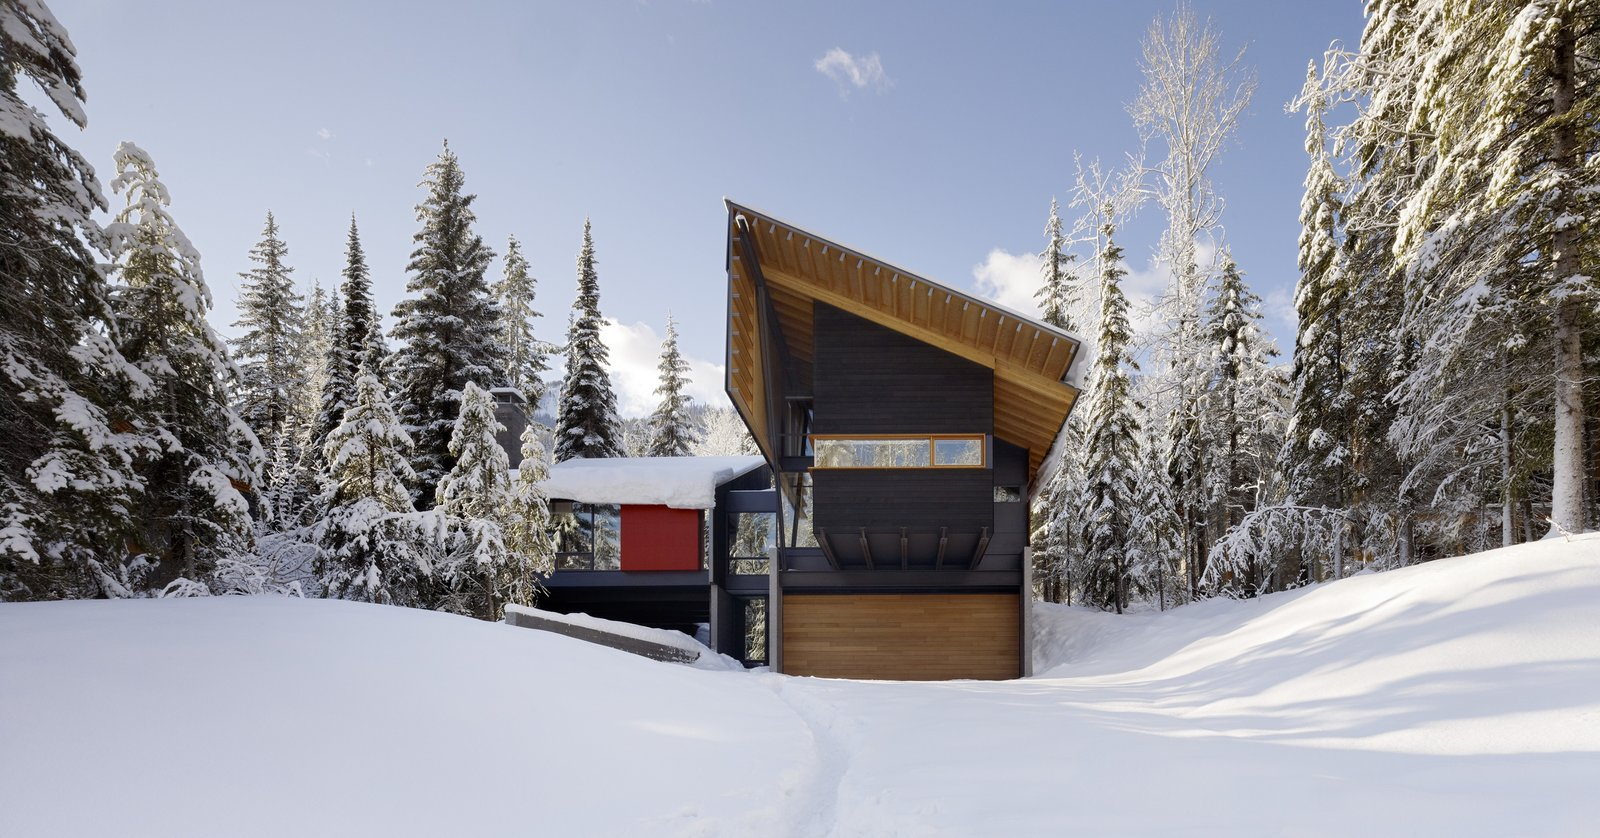 Tagged: Outdoor and Front Yard. Kicking Horse Residence by Bohlin Cywinski Jackson